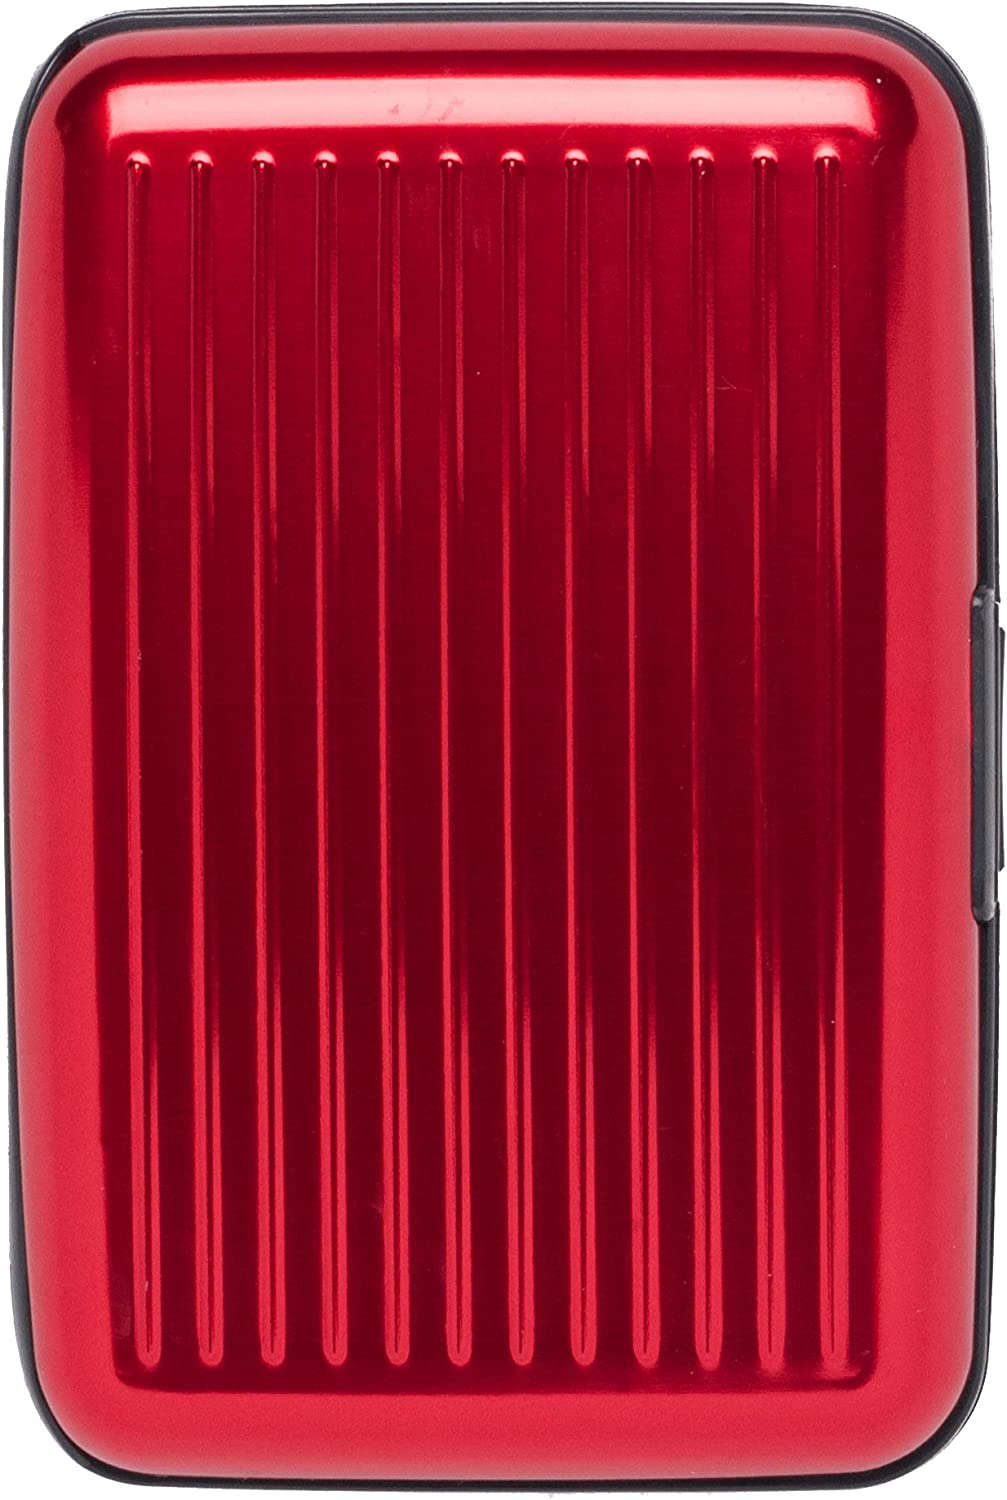 Monarque - Red Solid Armored Wallet Credit Card Case with RFID Data Theft Protection - Slim Design Fits in Front Pocket